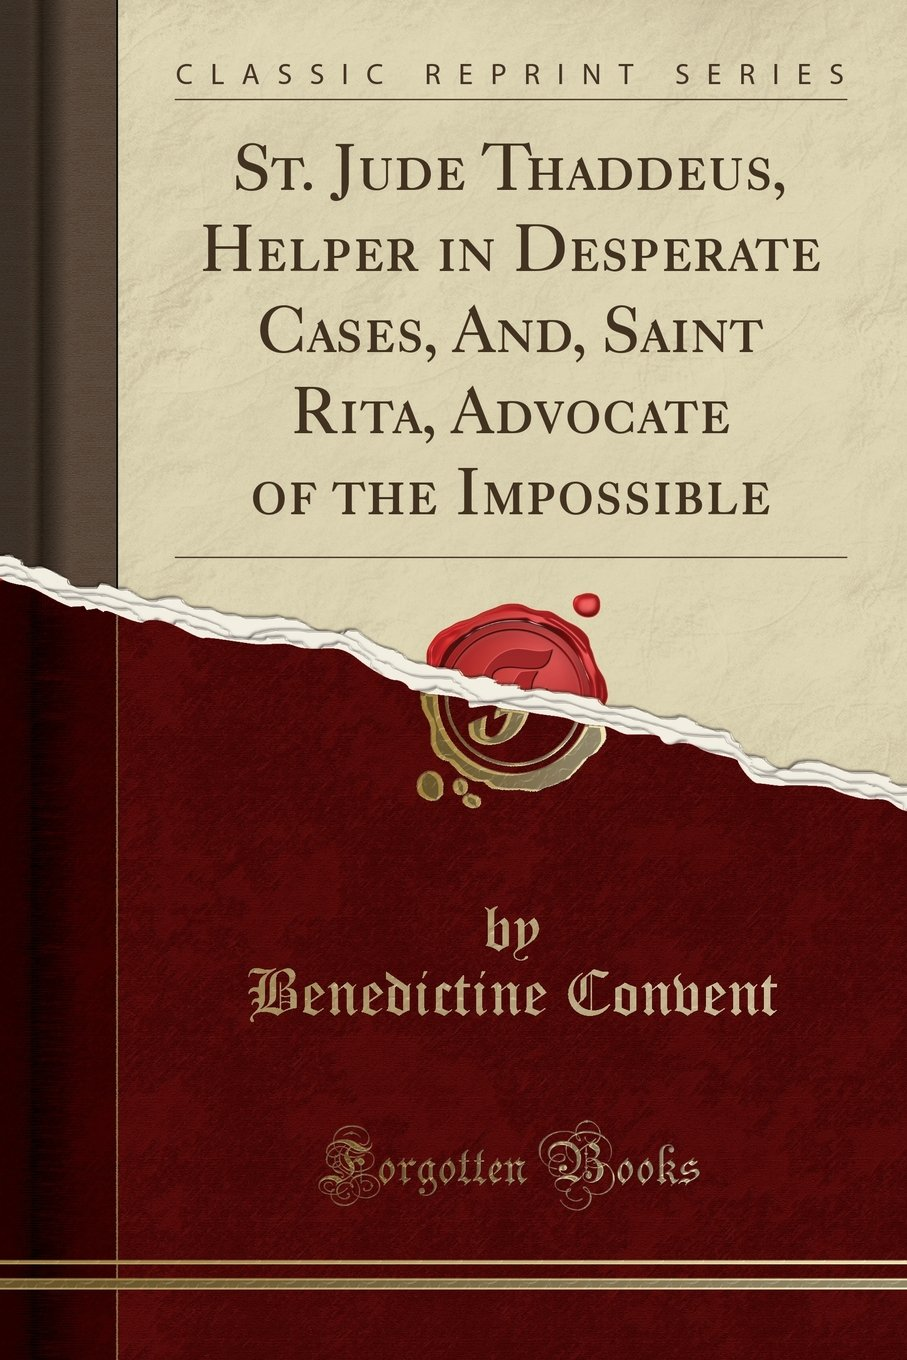 St. Jude Thaddeus, Helper in Desperate Cases, And, Saint Rita, Advocate of the Impossible (Classic Reprint) pdf